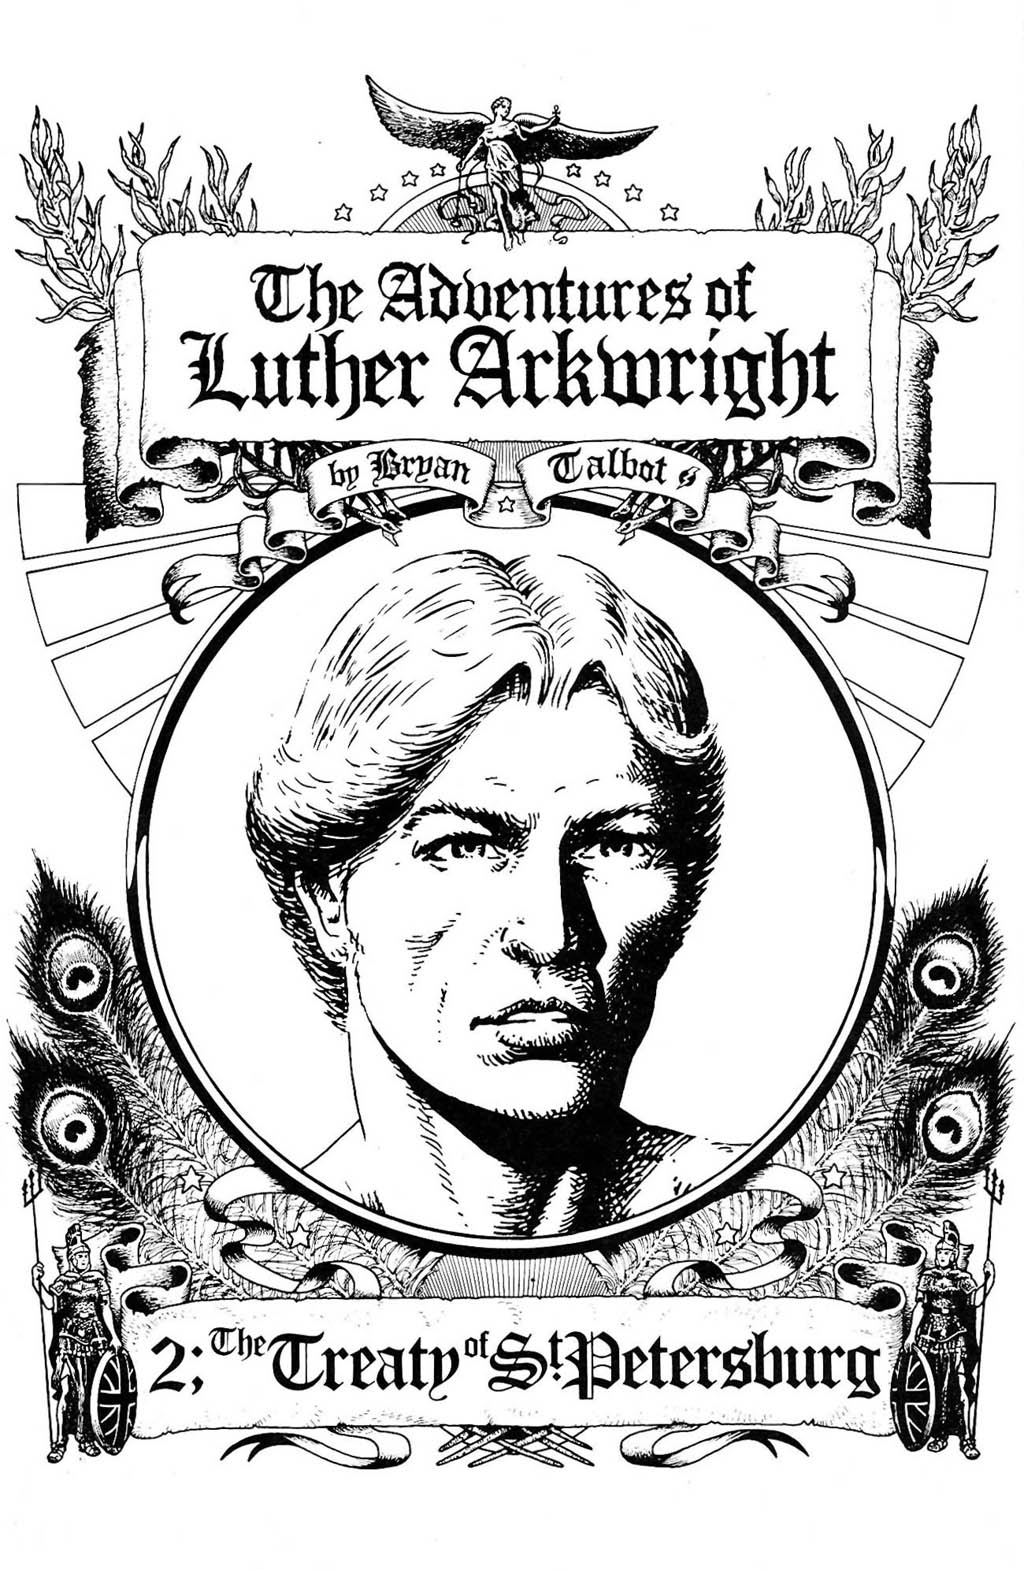 Read online The Adventures of Luther Arkwright comic -  Issue #2 - 3